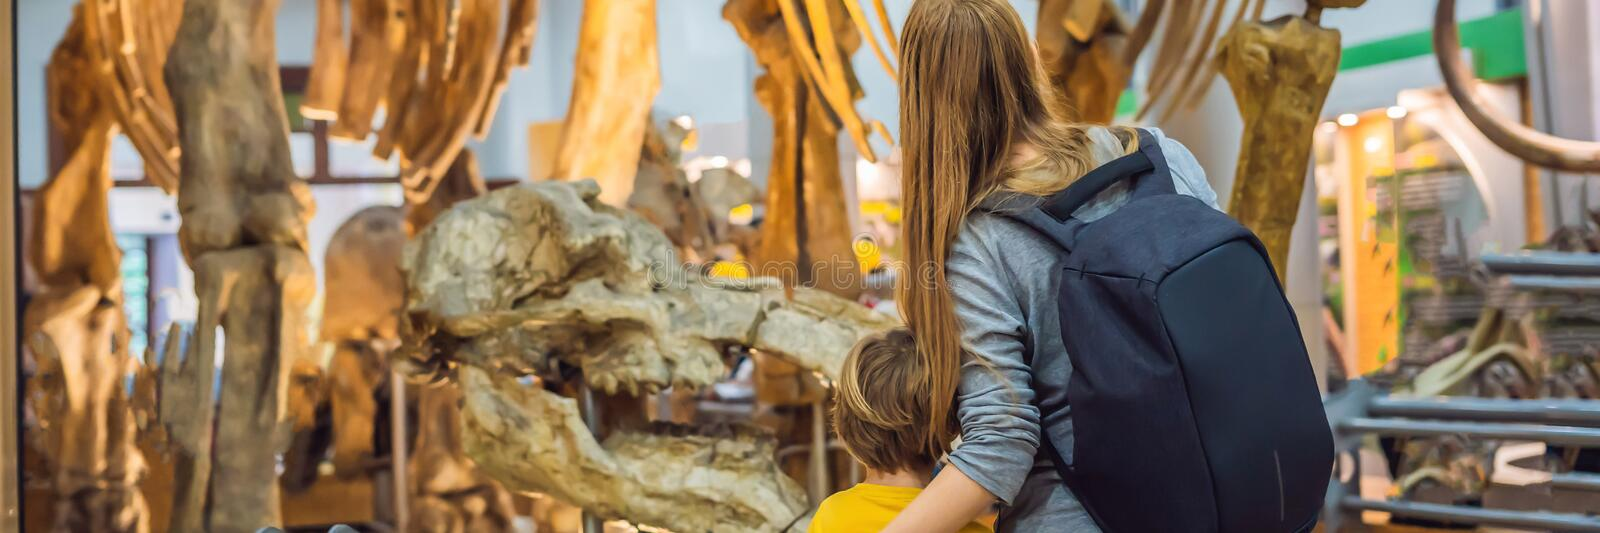 Mom and son watching dinosaur skeleton in museum BANNER, LONG FORMAT royalty free stock images